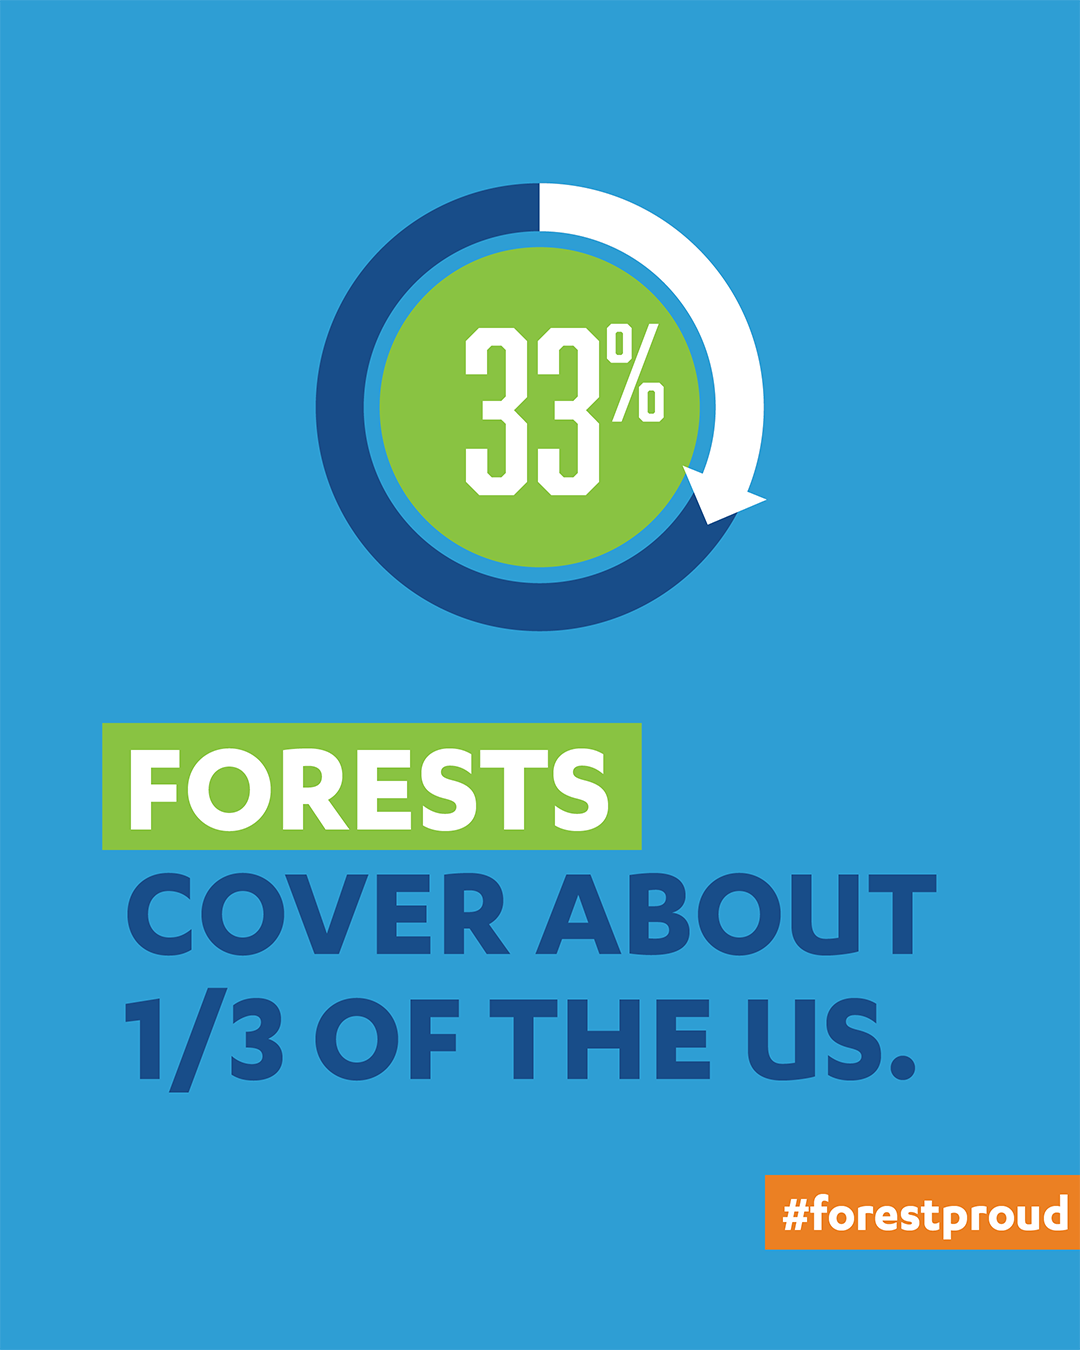 U.S. Forest Cover Percentage